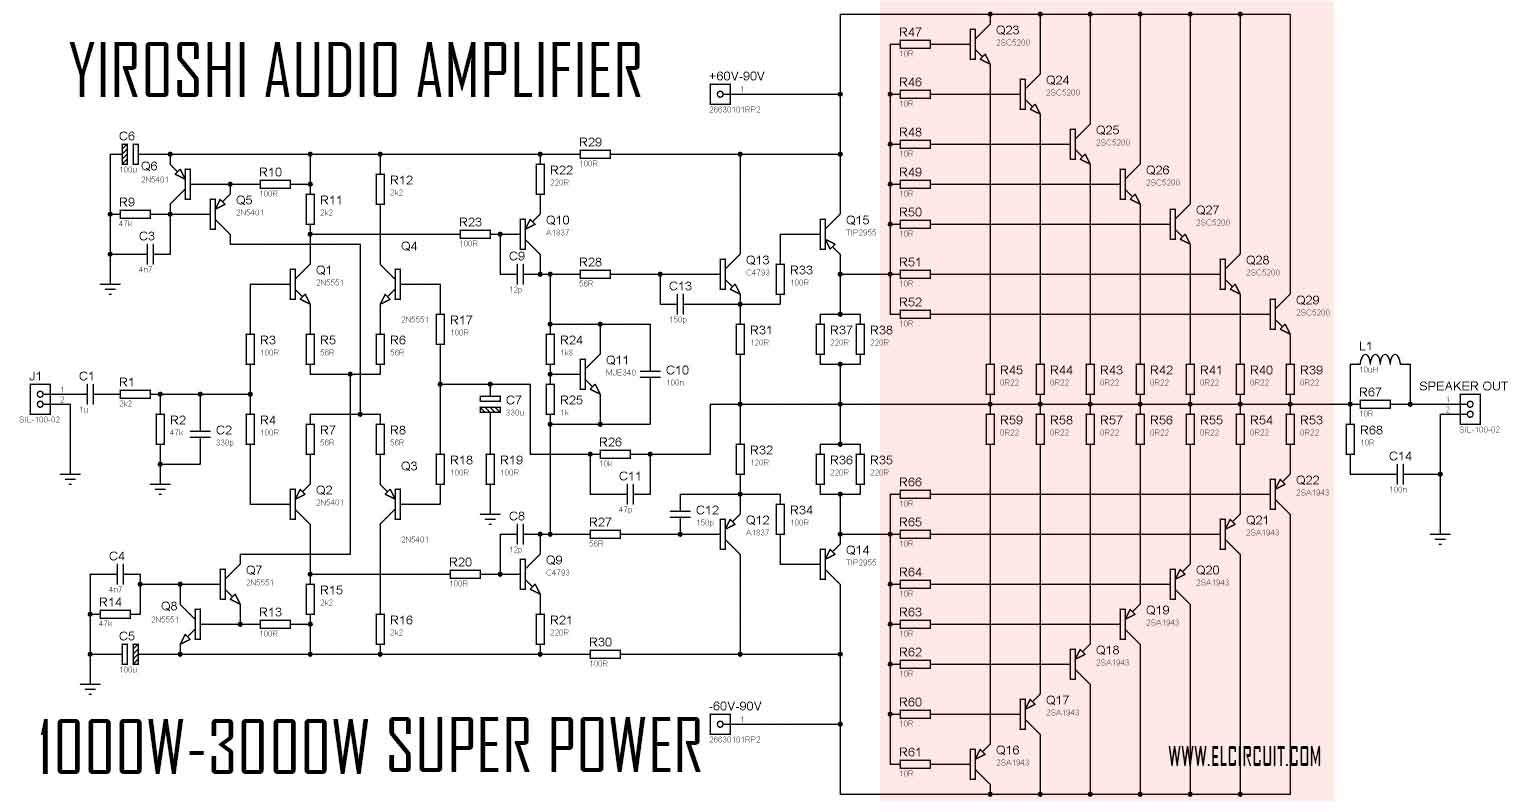 Yiroshi audio power amplifier circuit diagram